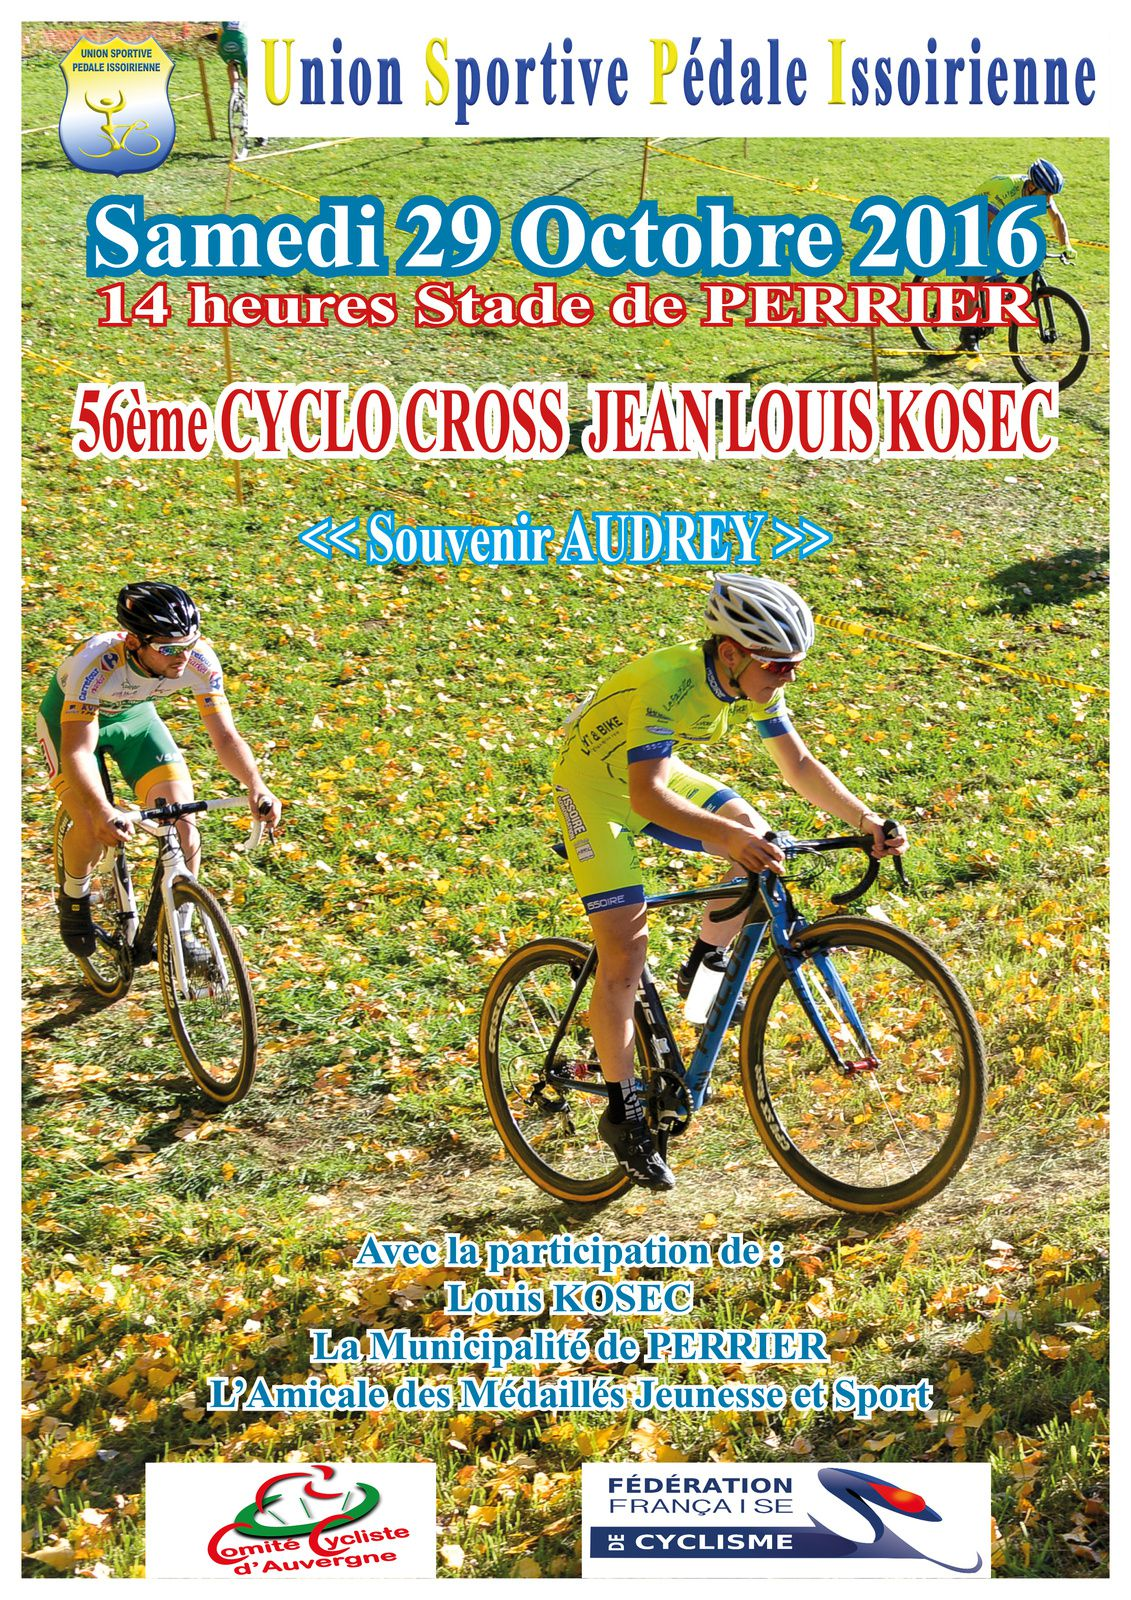 Annonce de Course : Cyclo Cross de Perrier